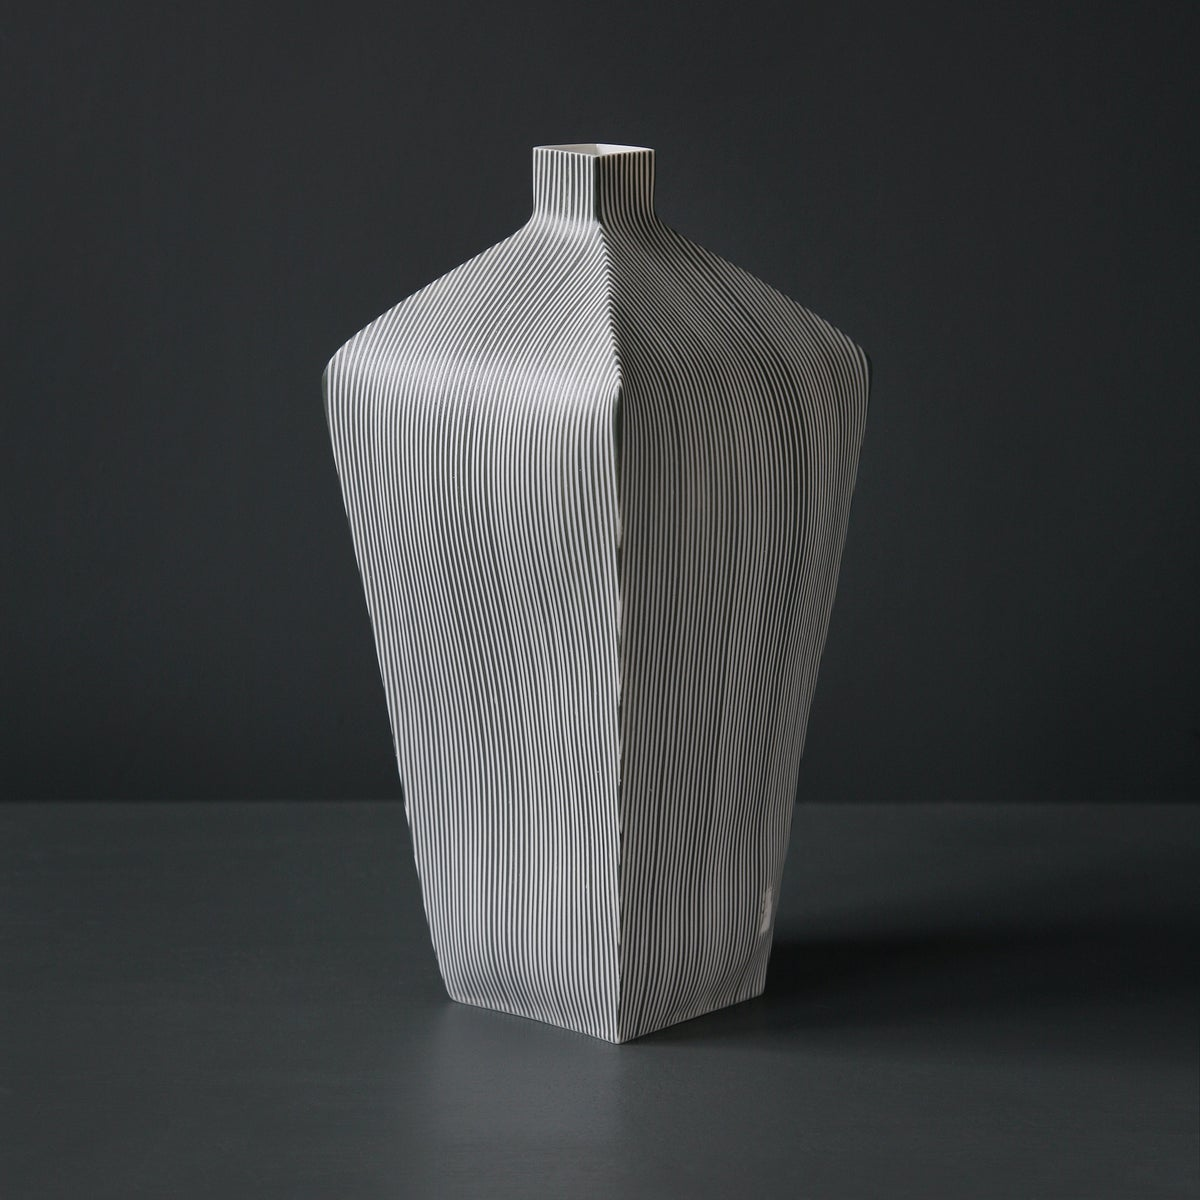 Image of Large Tapered Stripe Vessel by Justine Allison.